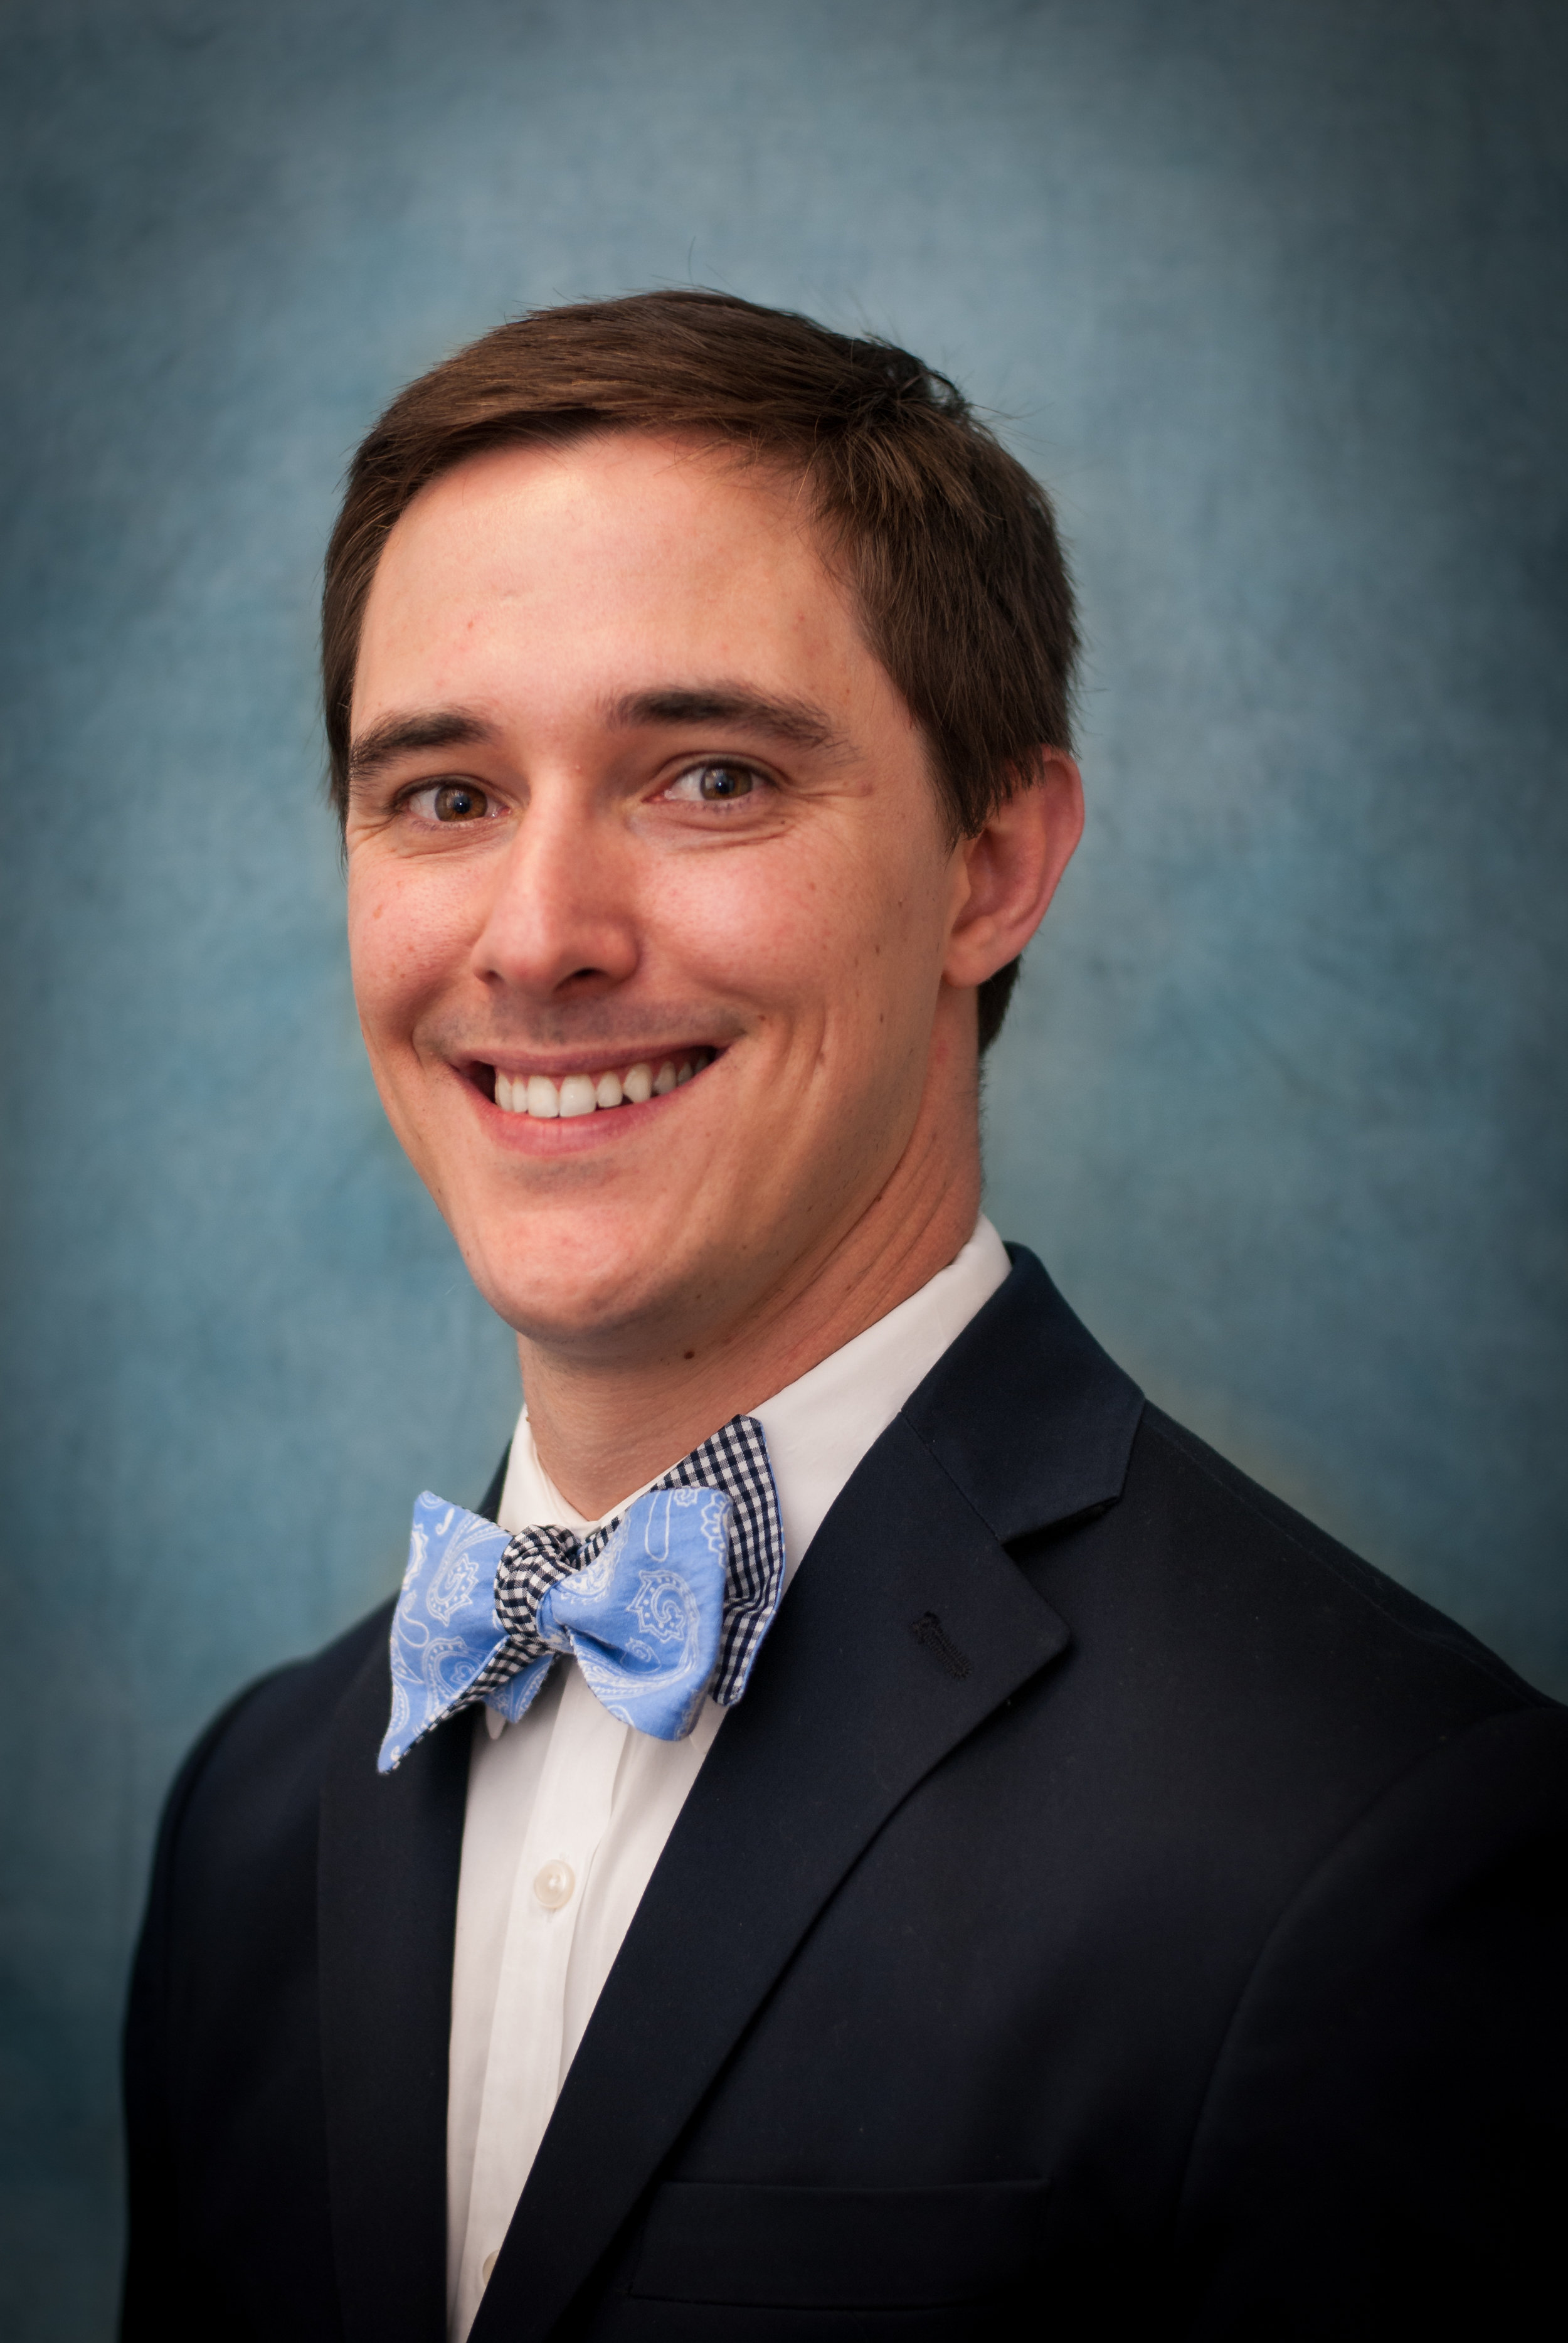 Adam P. Campbell, MD - Fellowship Trained Rhinologist & Endoscopic Sinus Surgeon